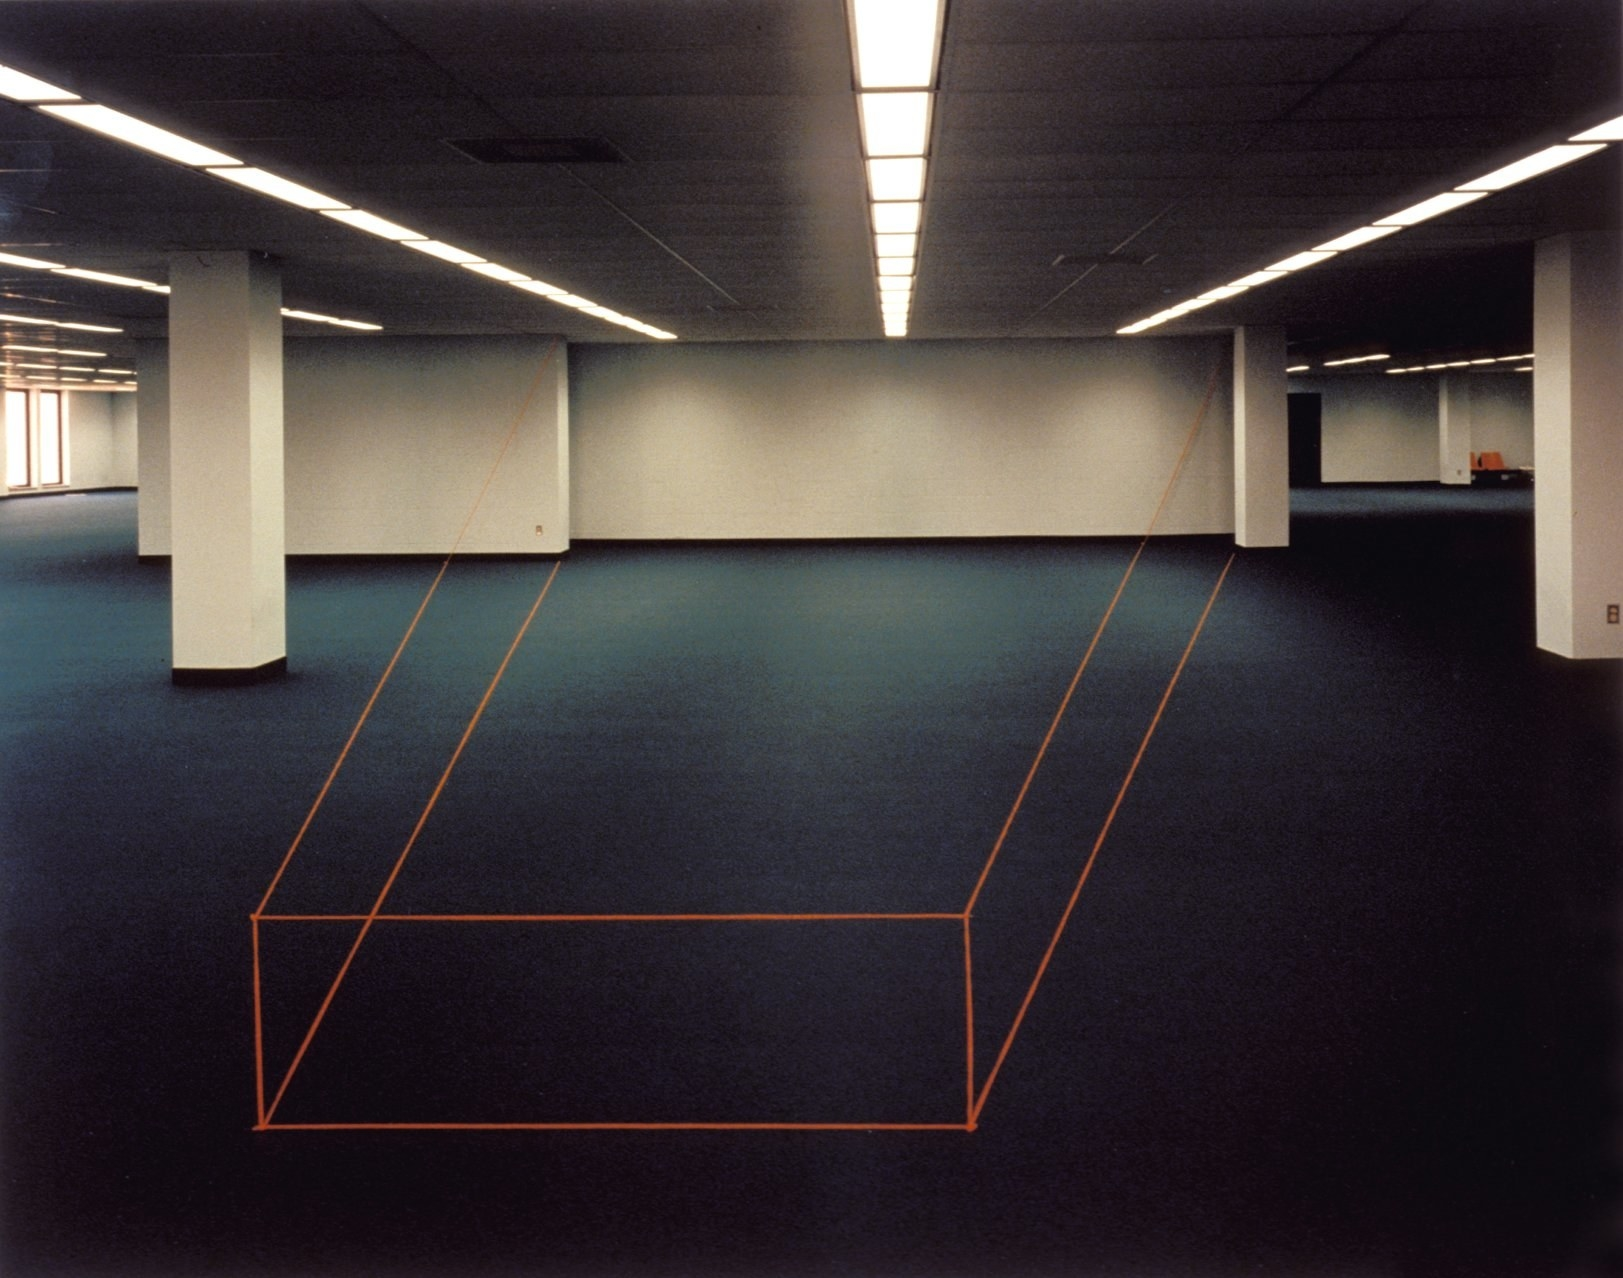 A wall is turned into a cube using tape on the floor